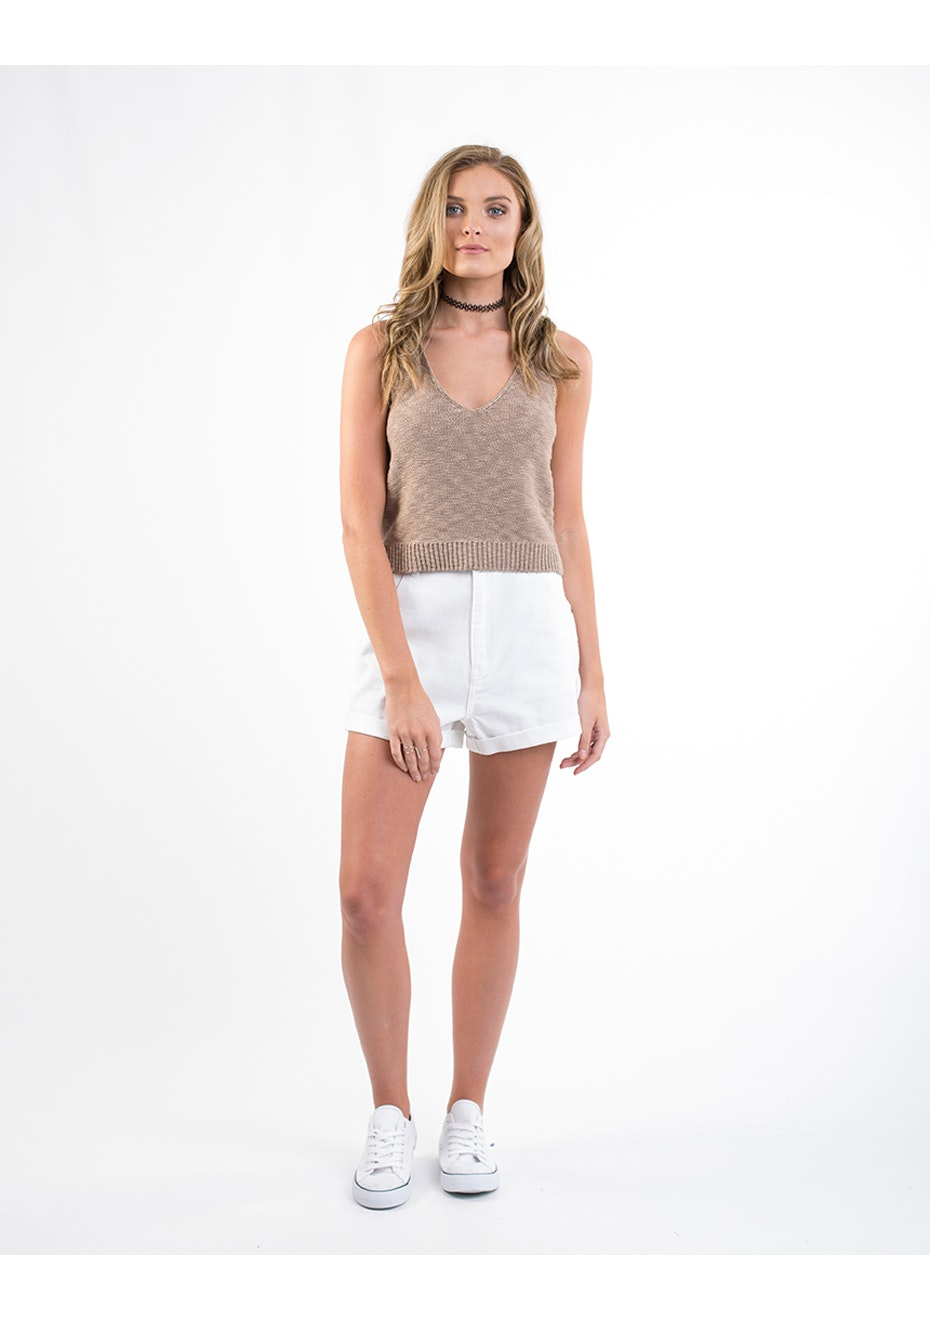 All About Eve - Ambiance Knit Tank - Tan